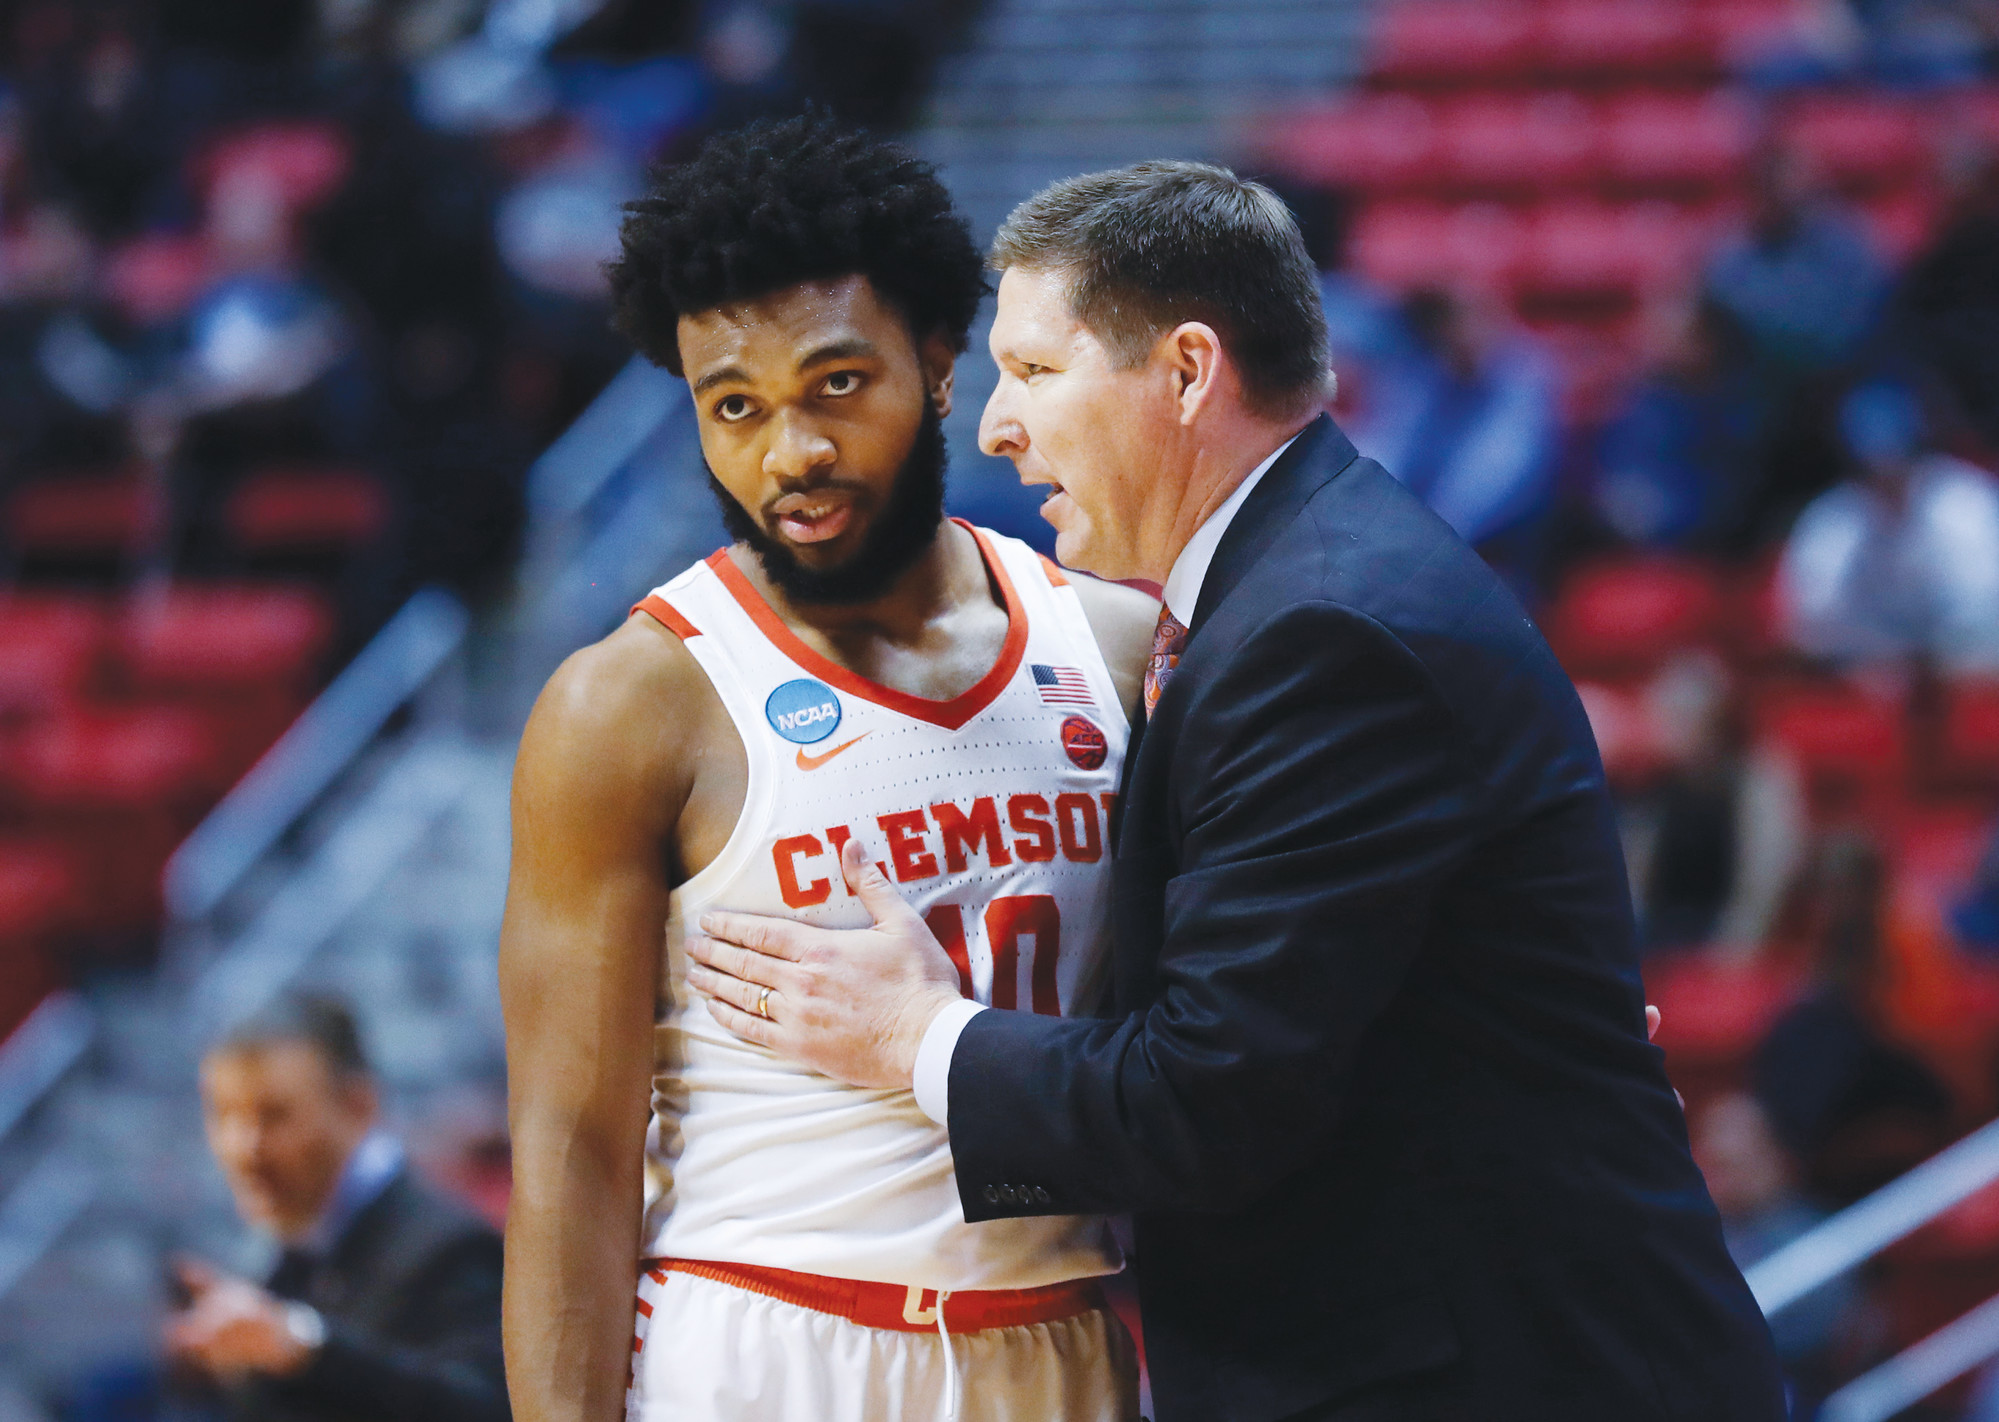 Clemson coach Brad Brownell has a word with guard Gabe DeVoe during the second half of the team's first-round victory over New Mexico State on Friday in San Diego.